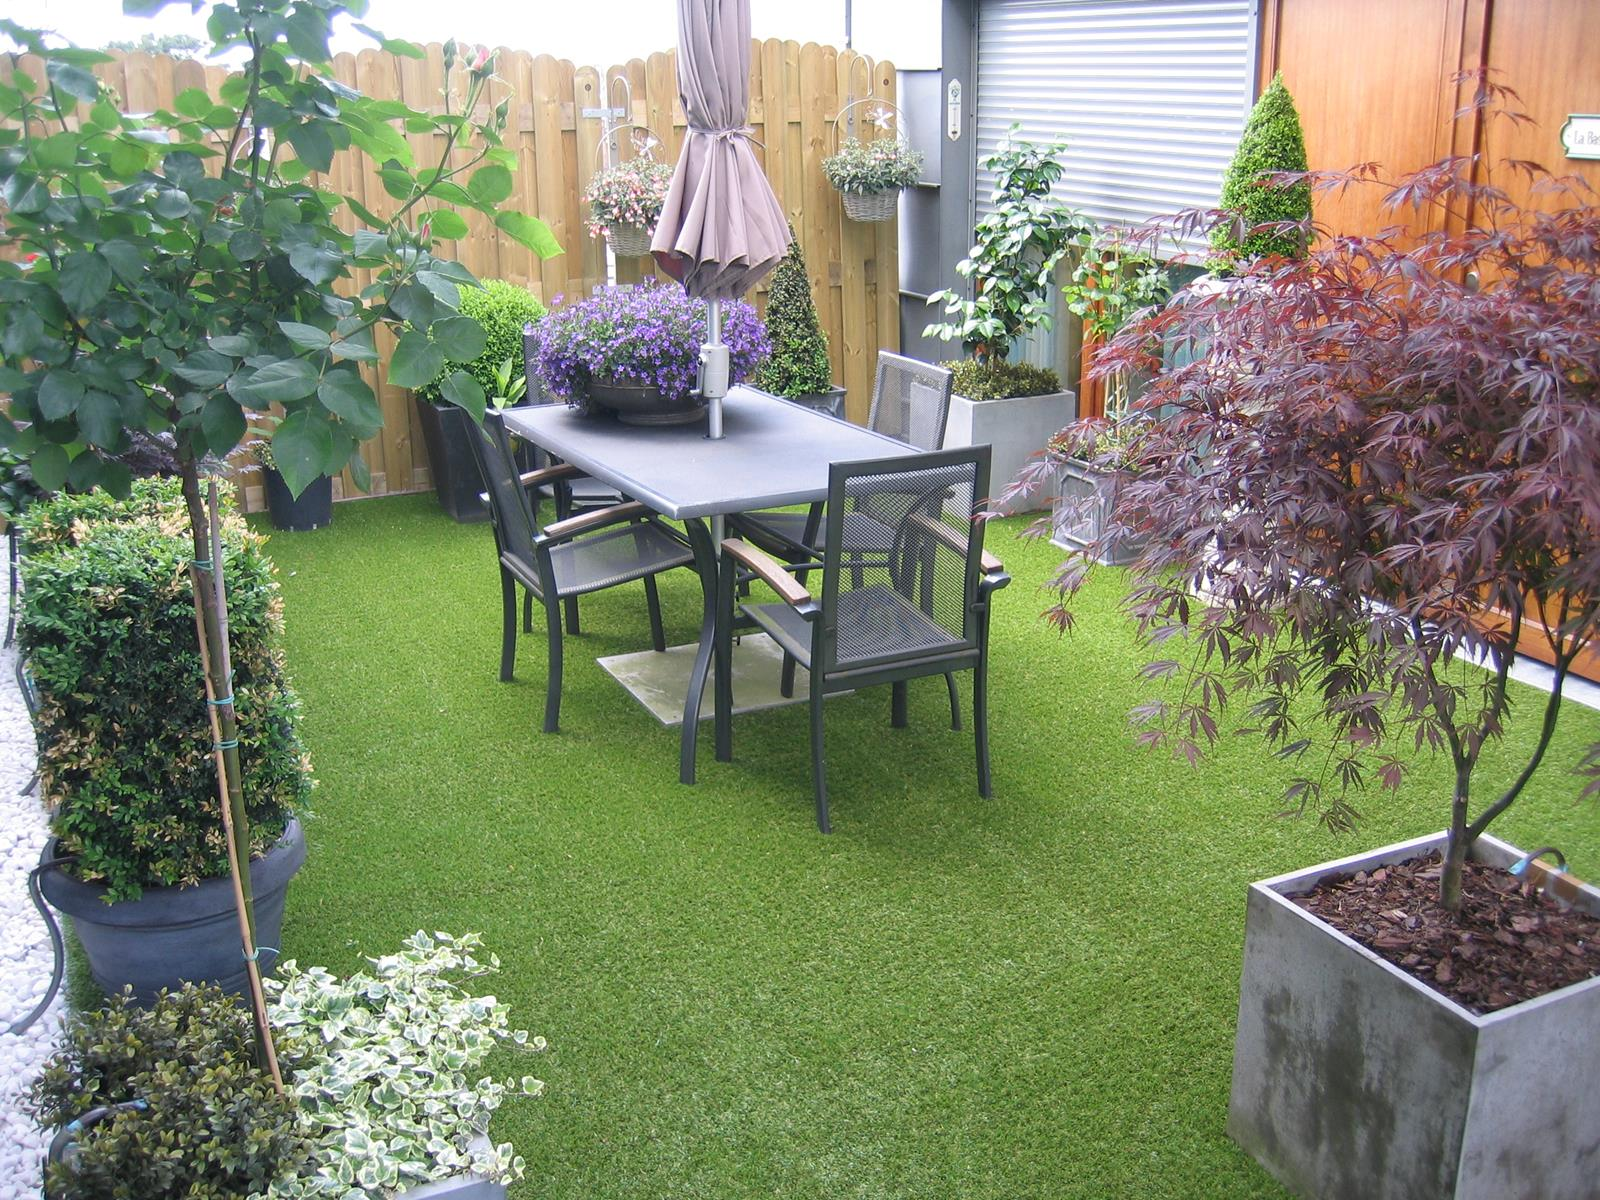 Exemples de pose de gazon synth tique chez nos clients greenside blog - Gazon synthetique terrasse ...